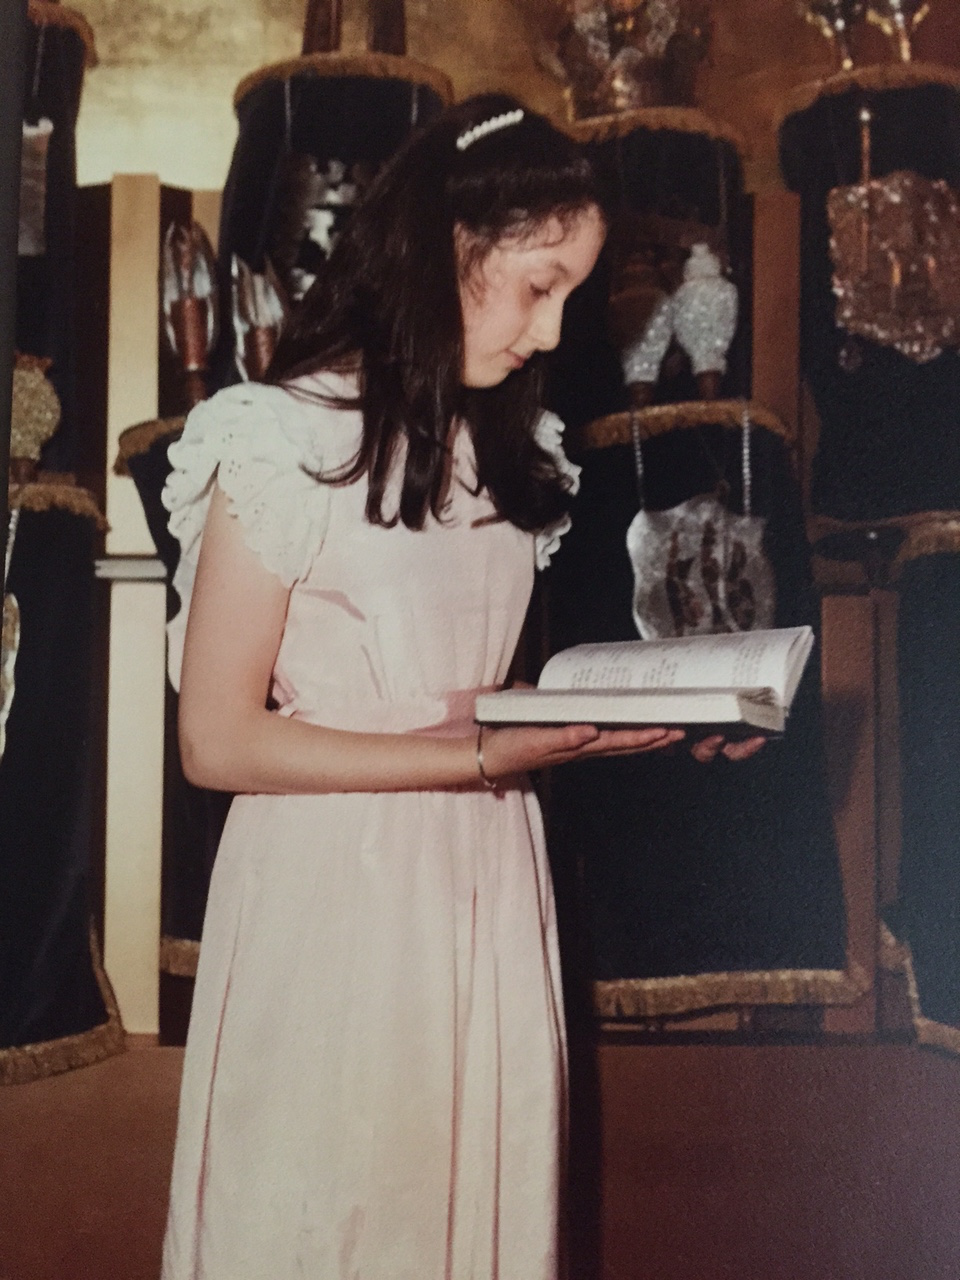 Erika Dreifus, pictured in front of the Torah scrolls at her home congregation in New Jersey, 1982.